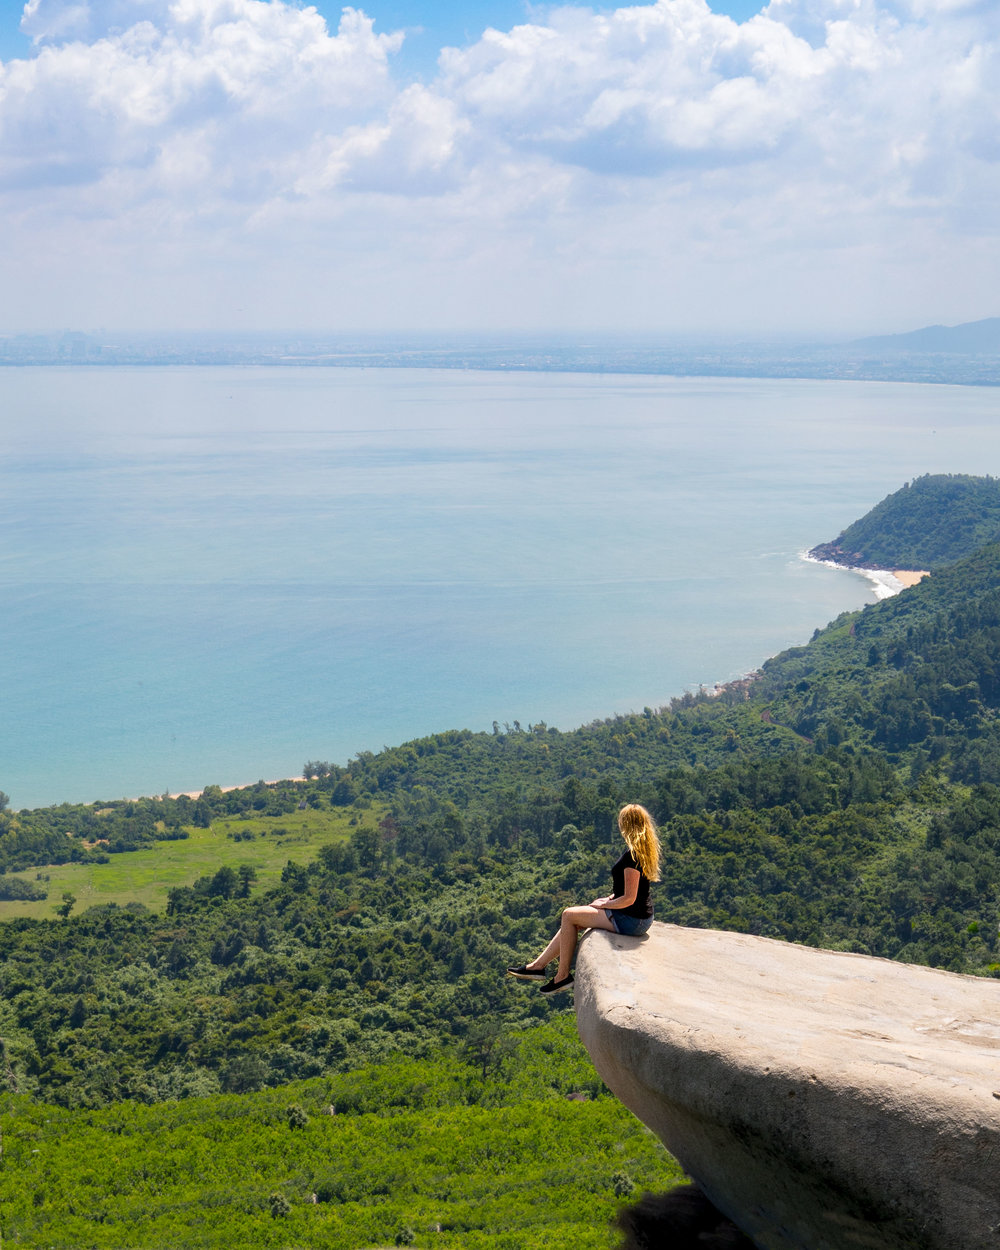 An epic lookout at the Hai Van Pass near Da Nang and Hoi An